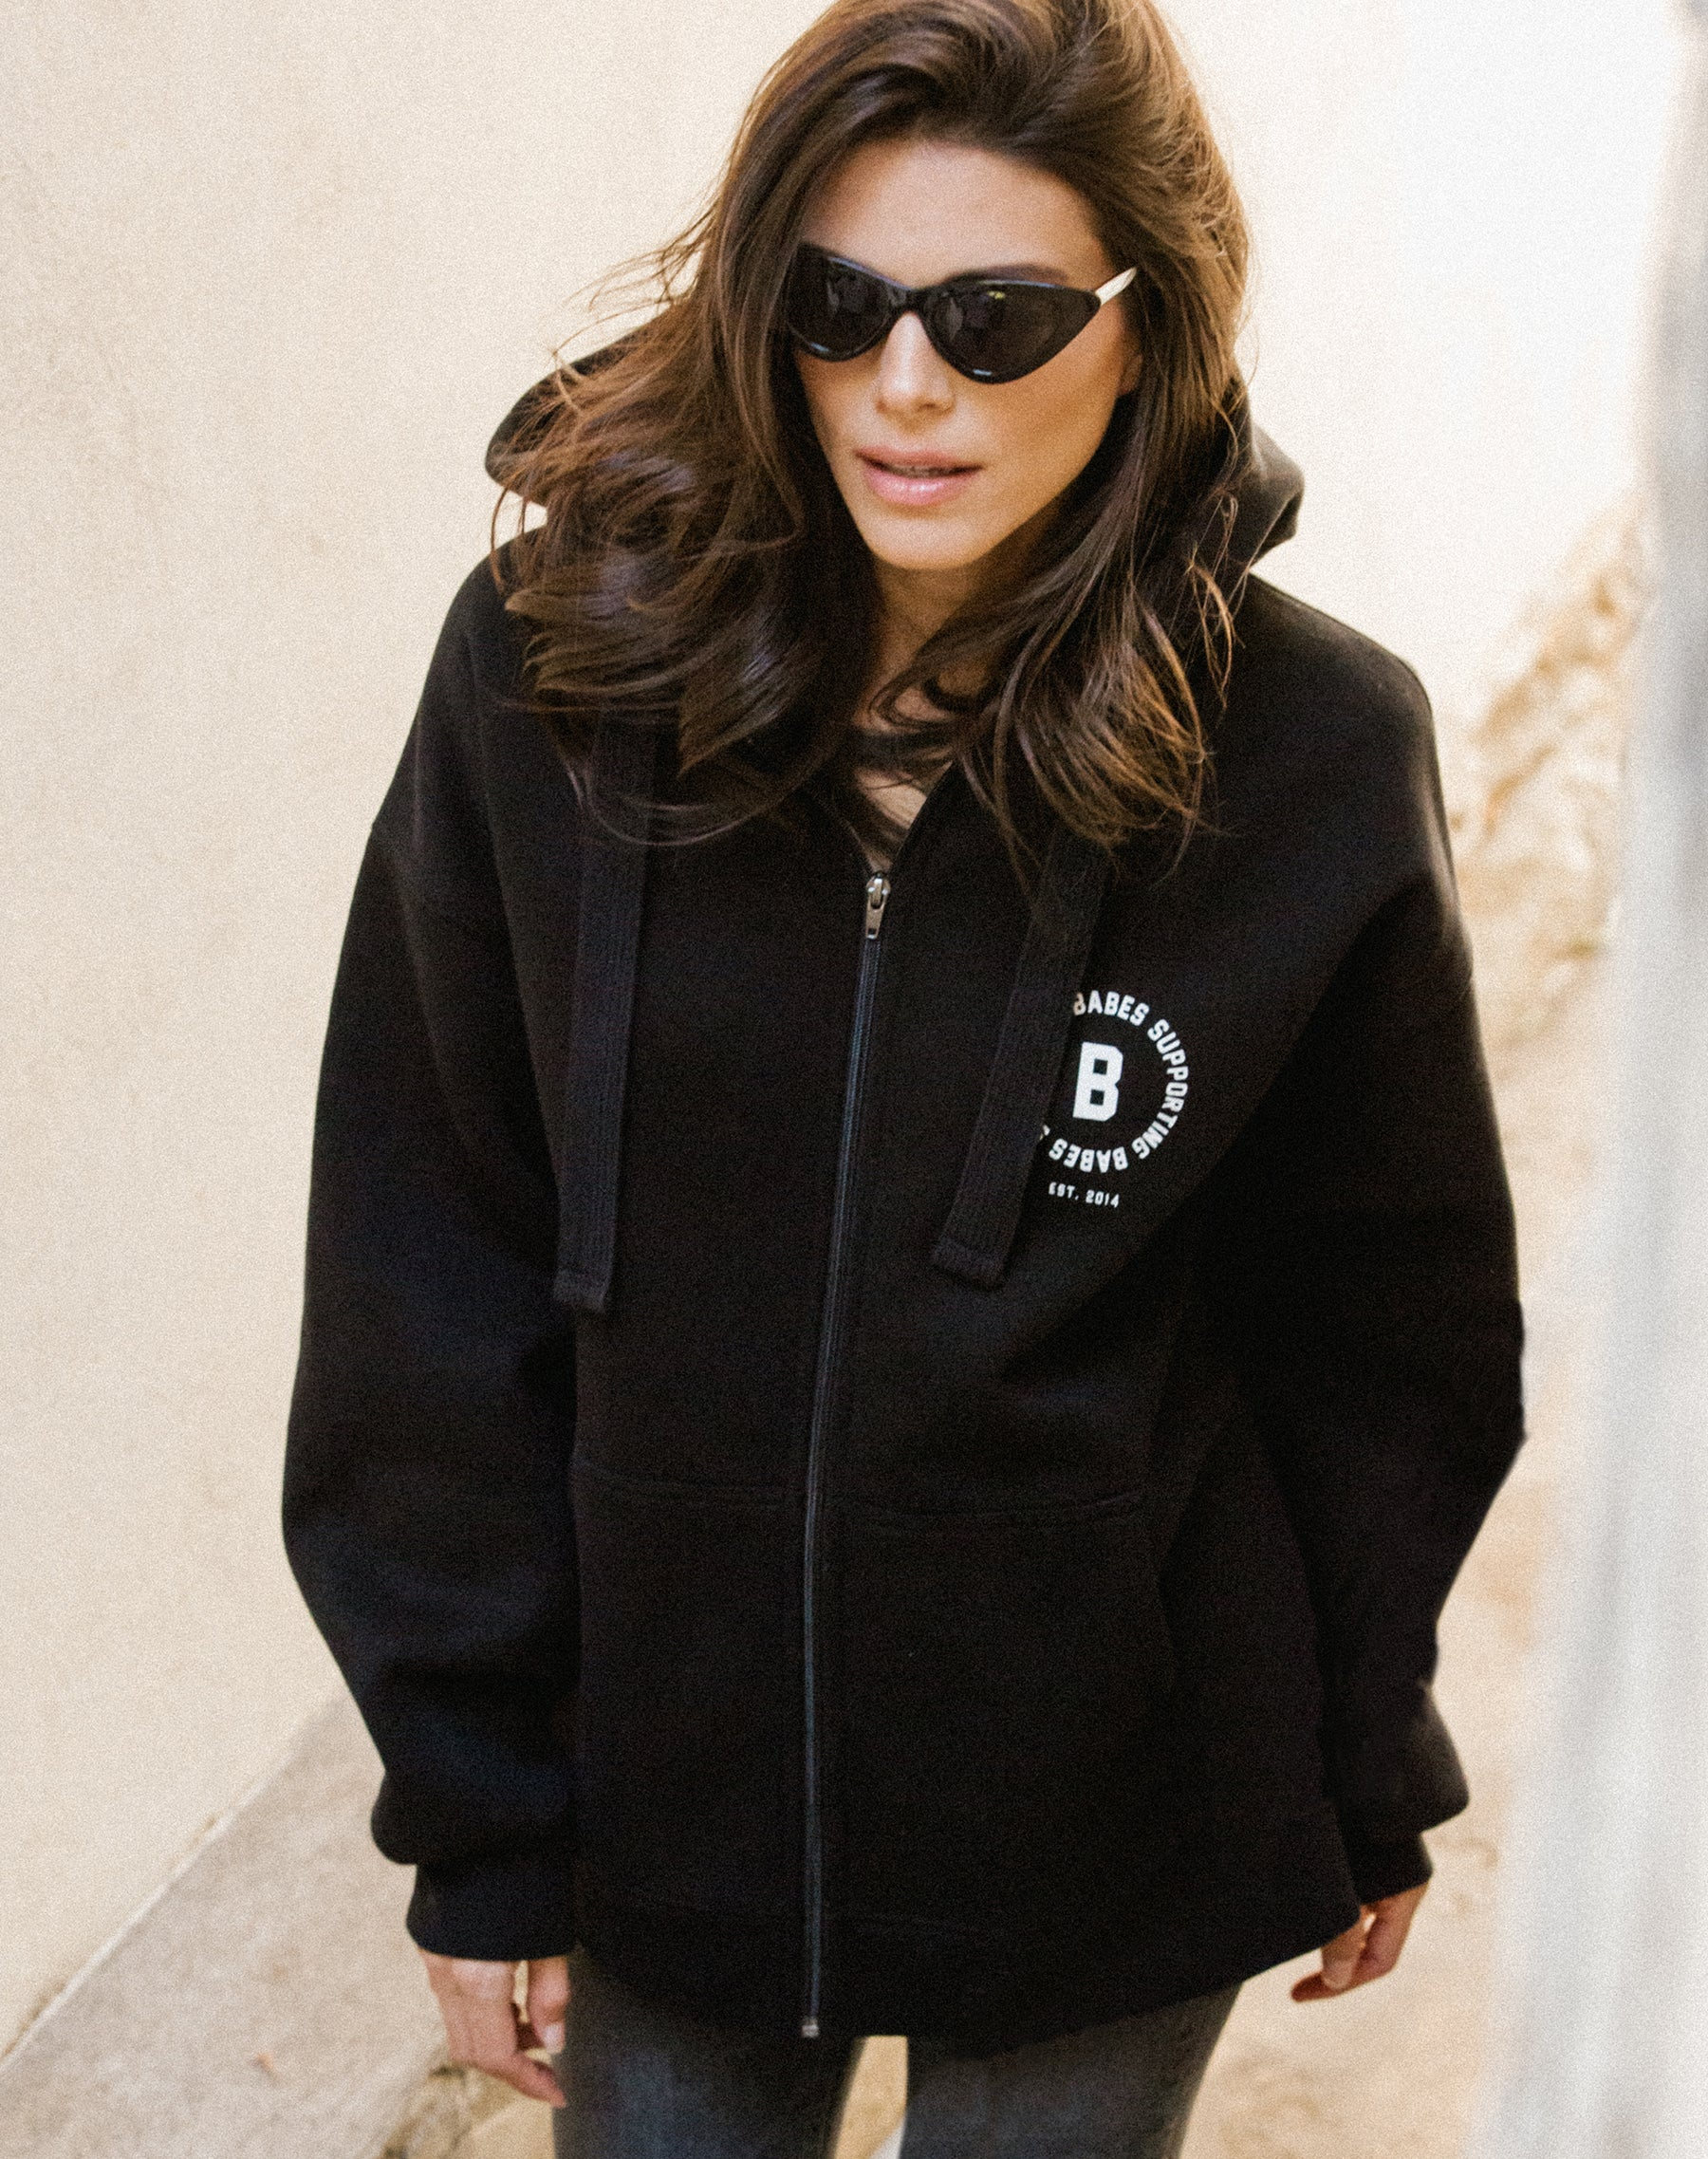 Photo of the Babes Supporting Babes big sister zip up hoodie in black by Brunette the Label.